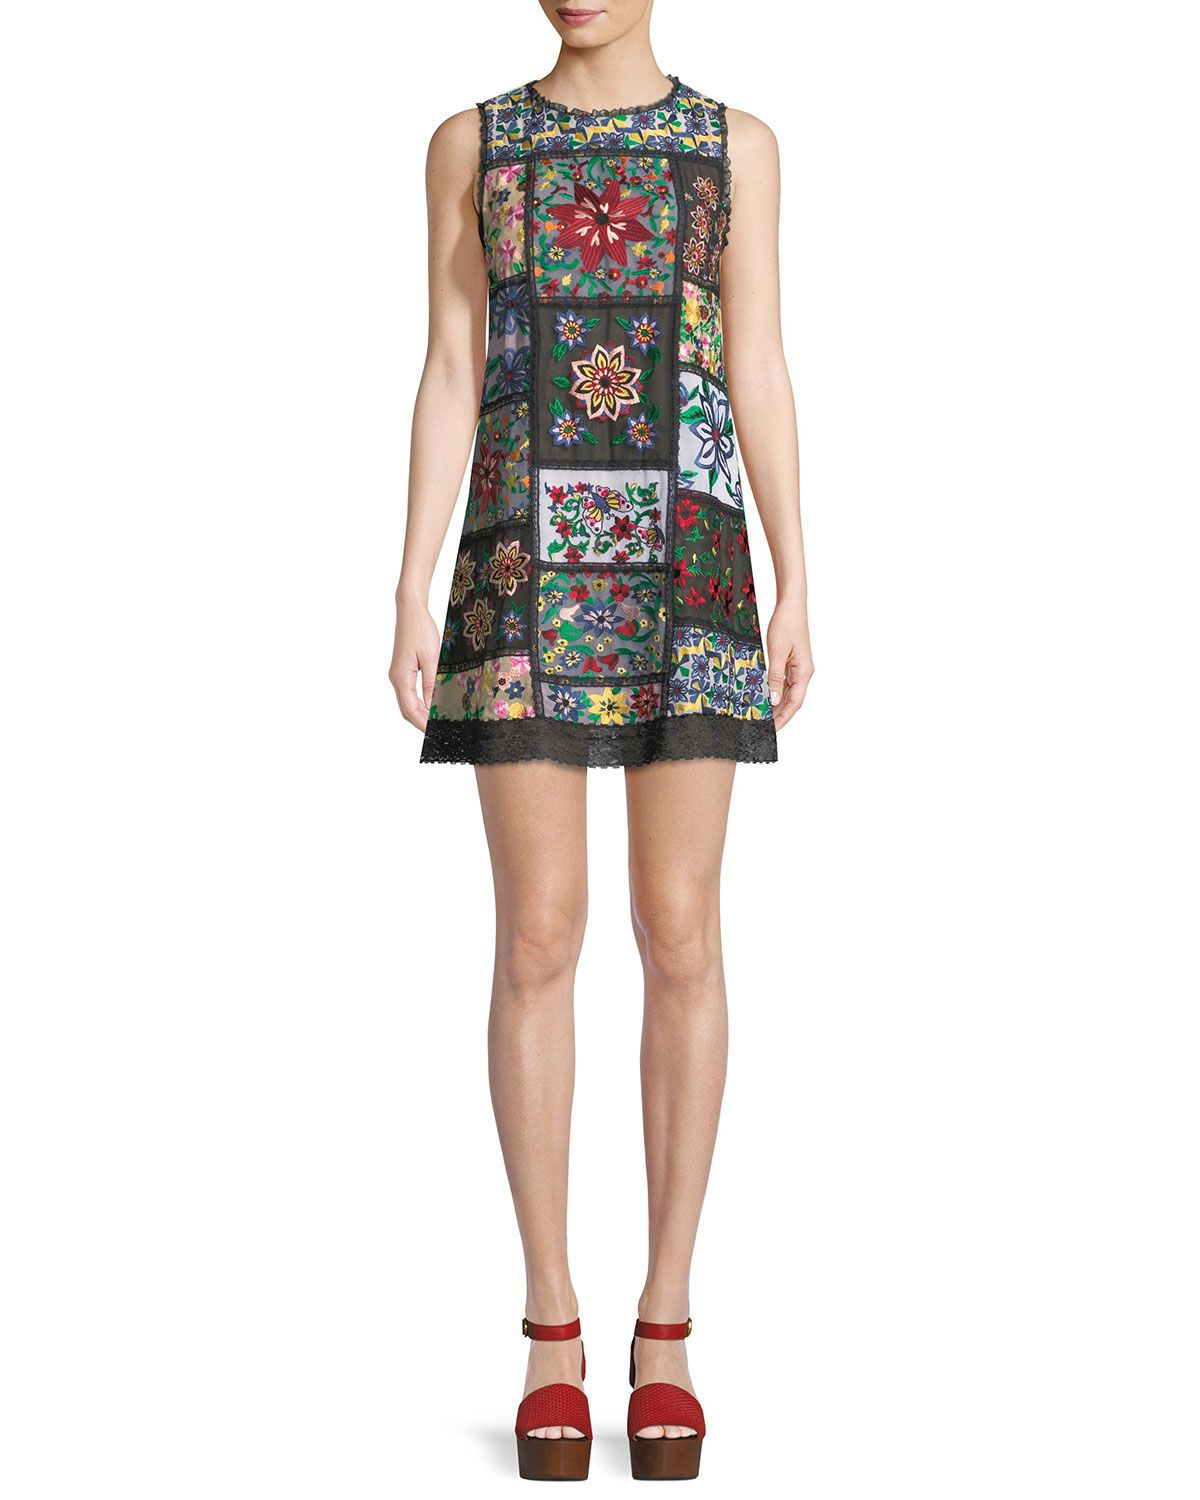 Recommend Cheap Online Hayden Star Jacquard Tee Dress Alice & Olivia Free Shipping Online Genuine Inexpensive For Sale Free Shipping Cheapest Price Zb7MOpi